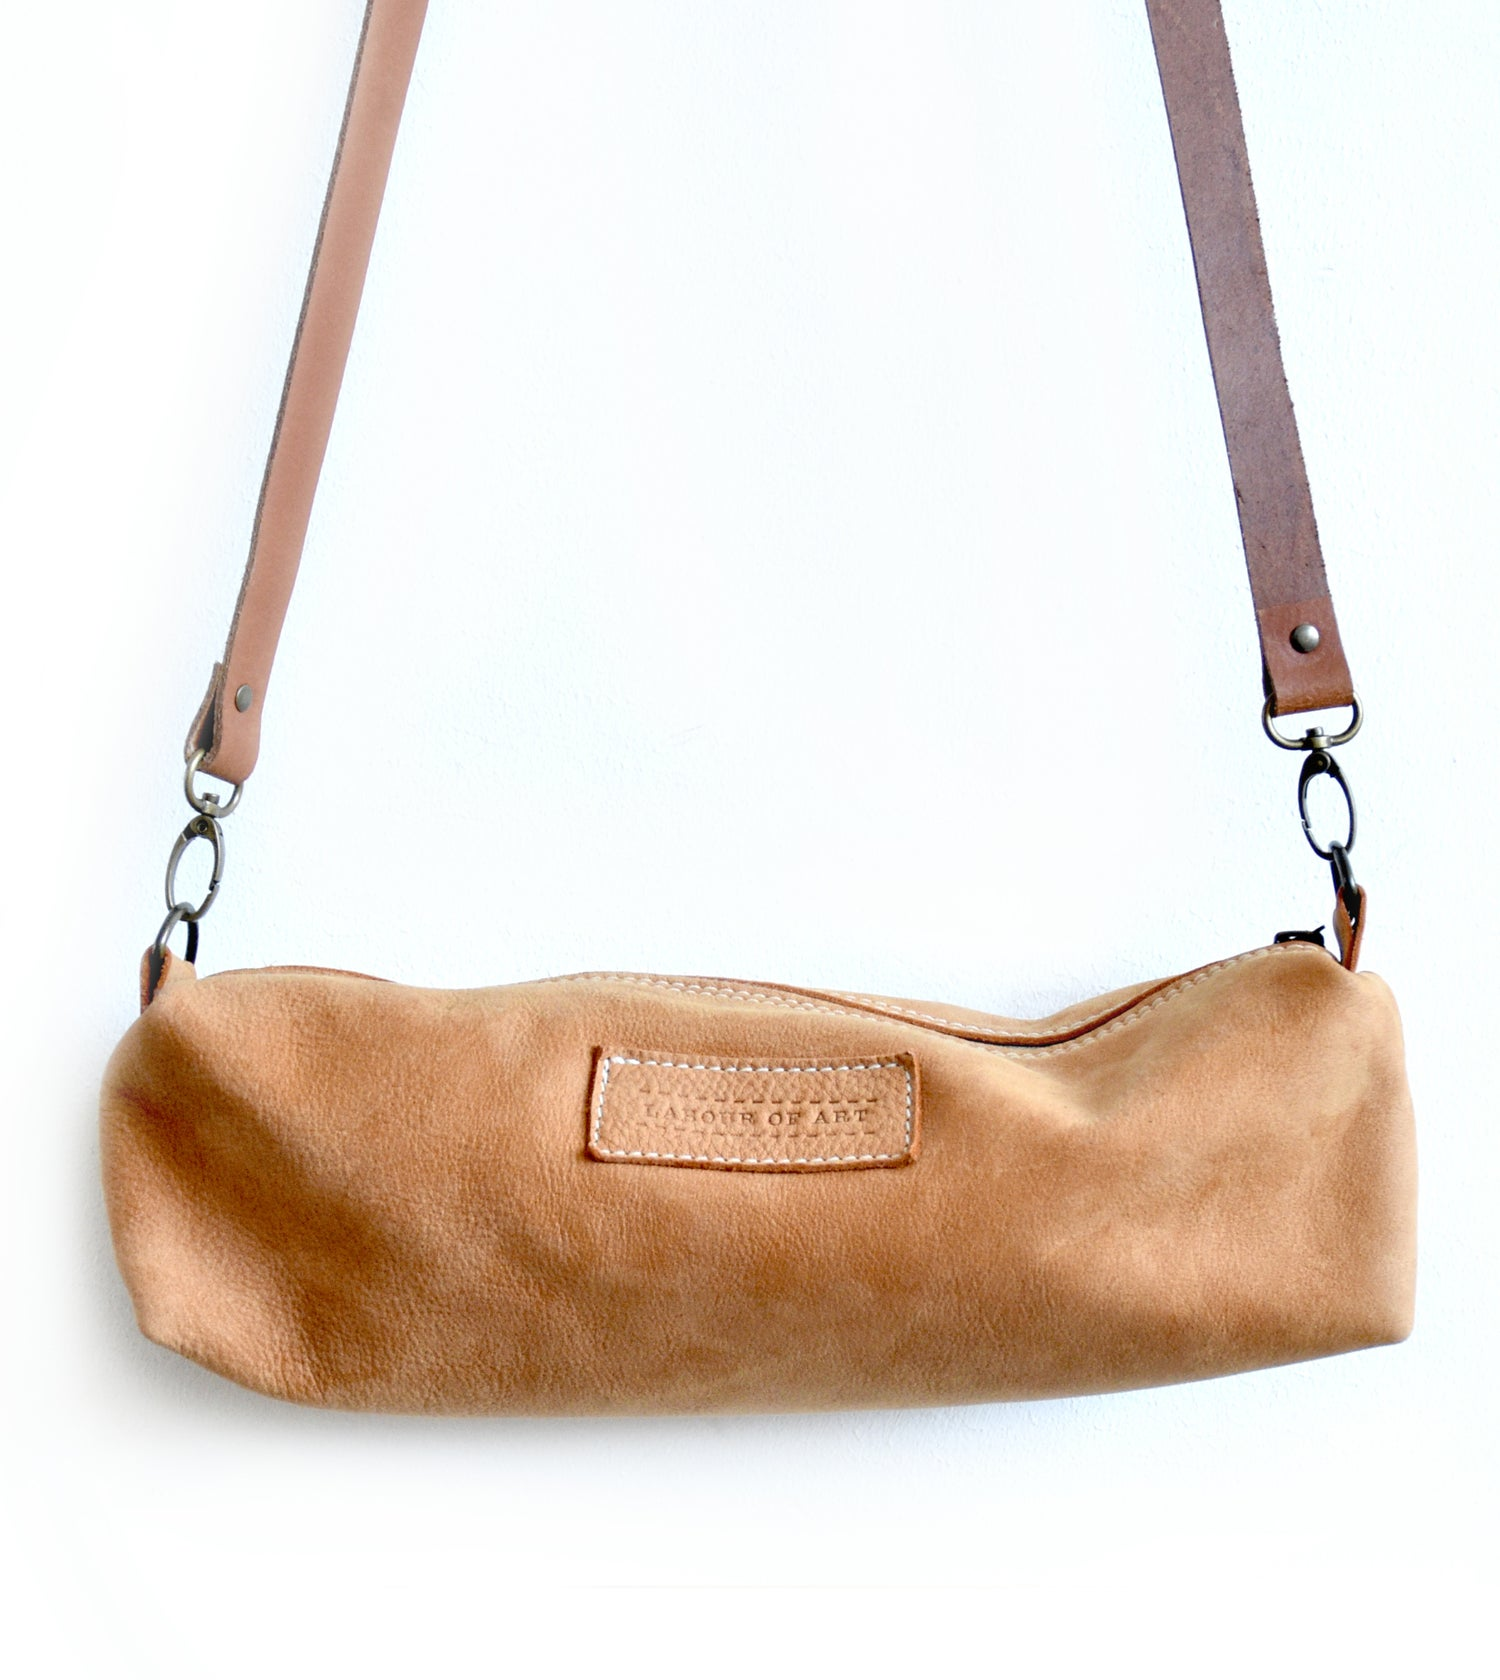 Image of Smooth Cognac Colored Leather Zip Bag, Double Faced Leather